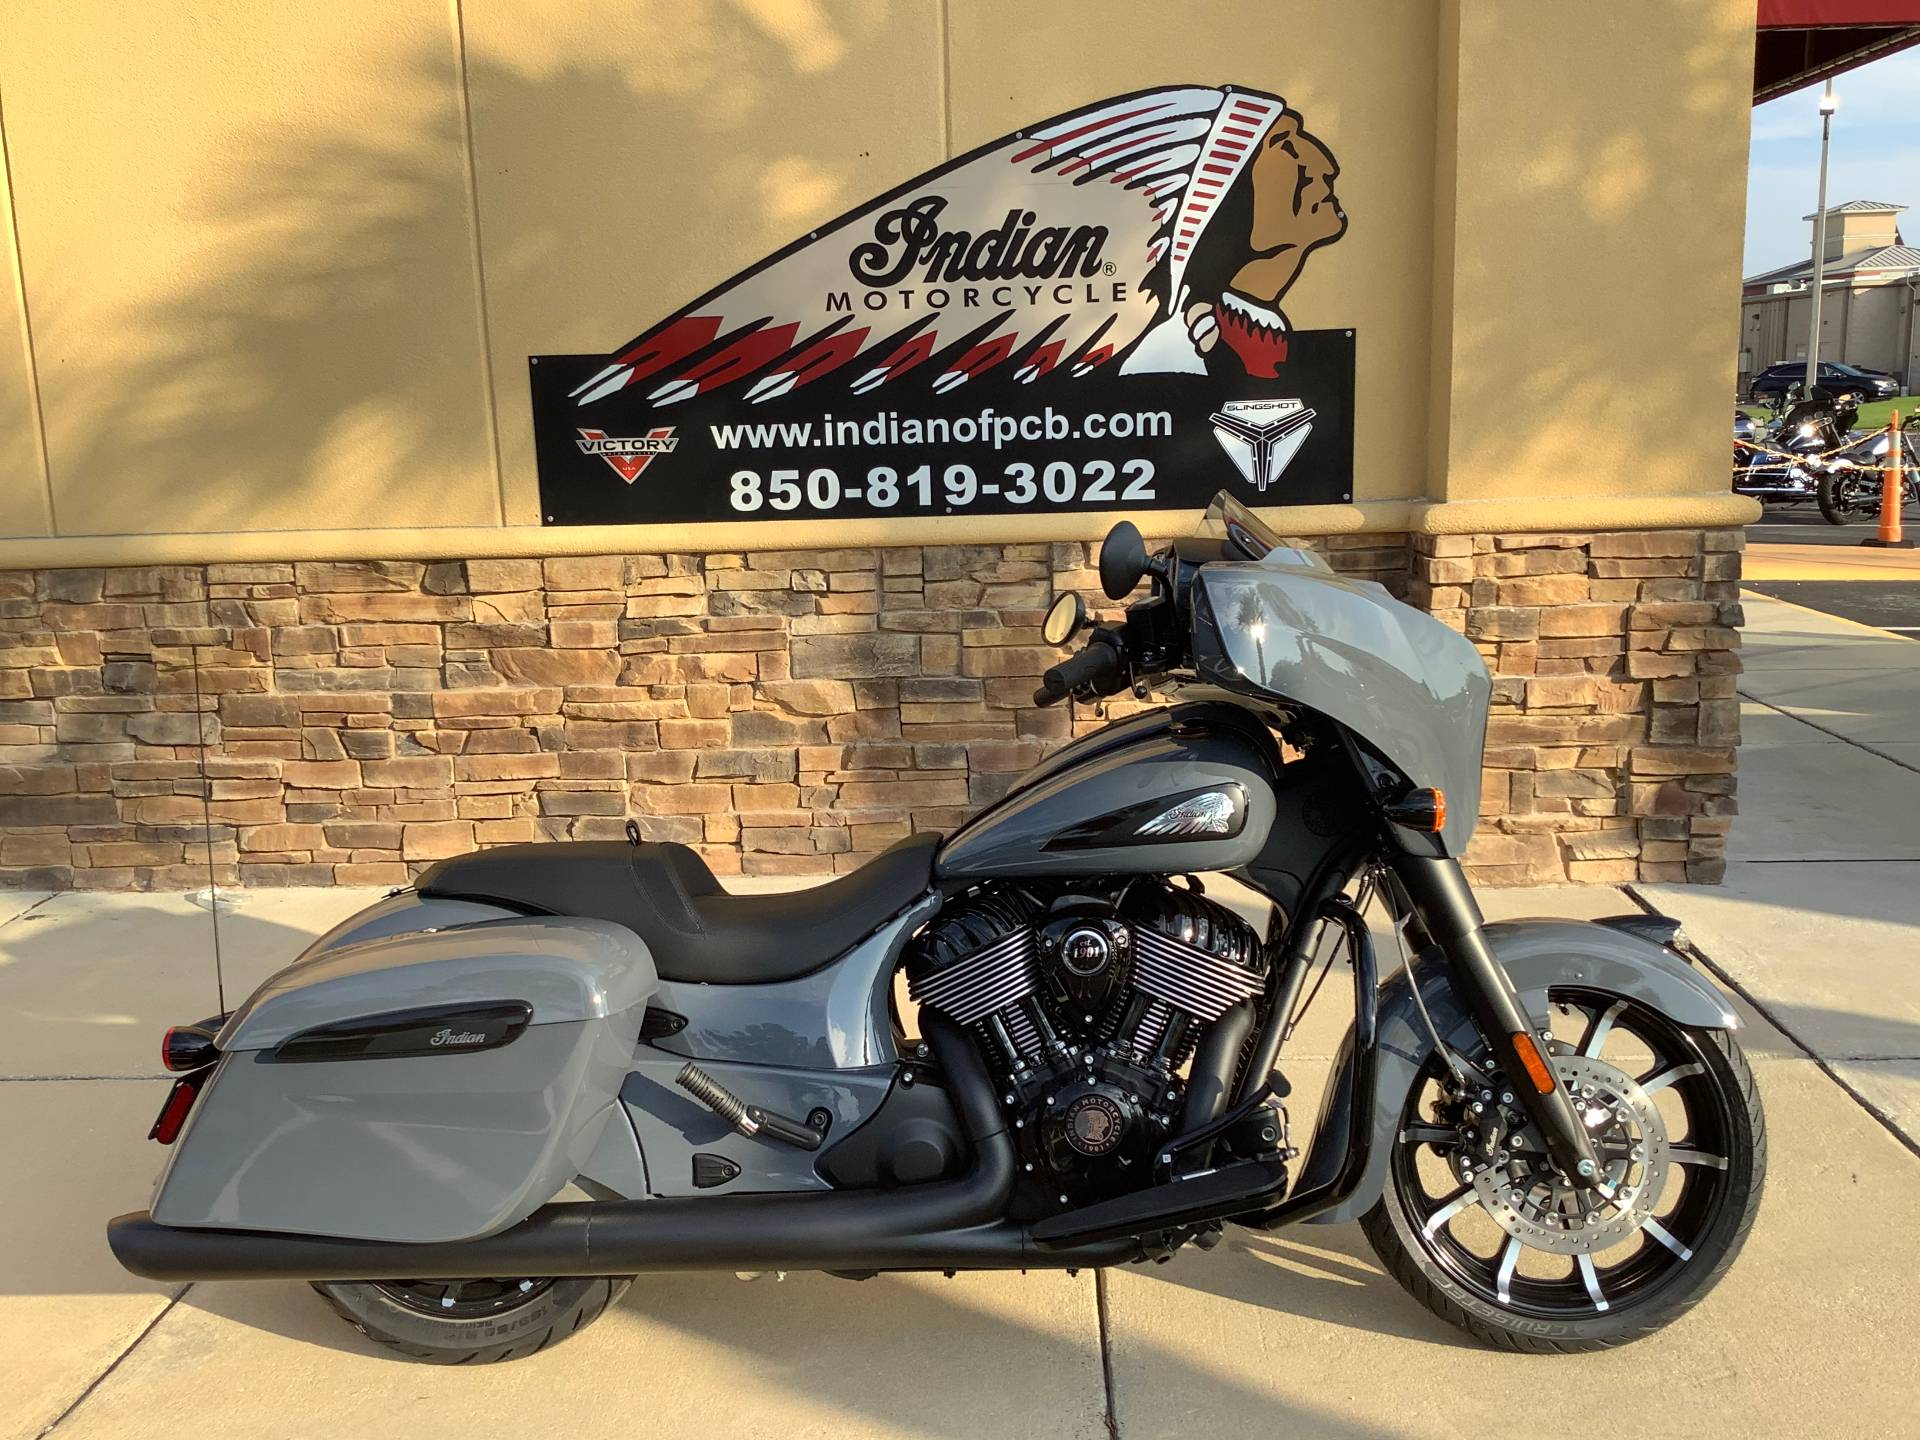 2021 Indian CHIEFTAIN DARKHORSE in Panama City Beach, Florida - Photo 1